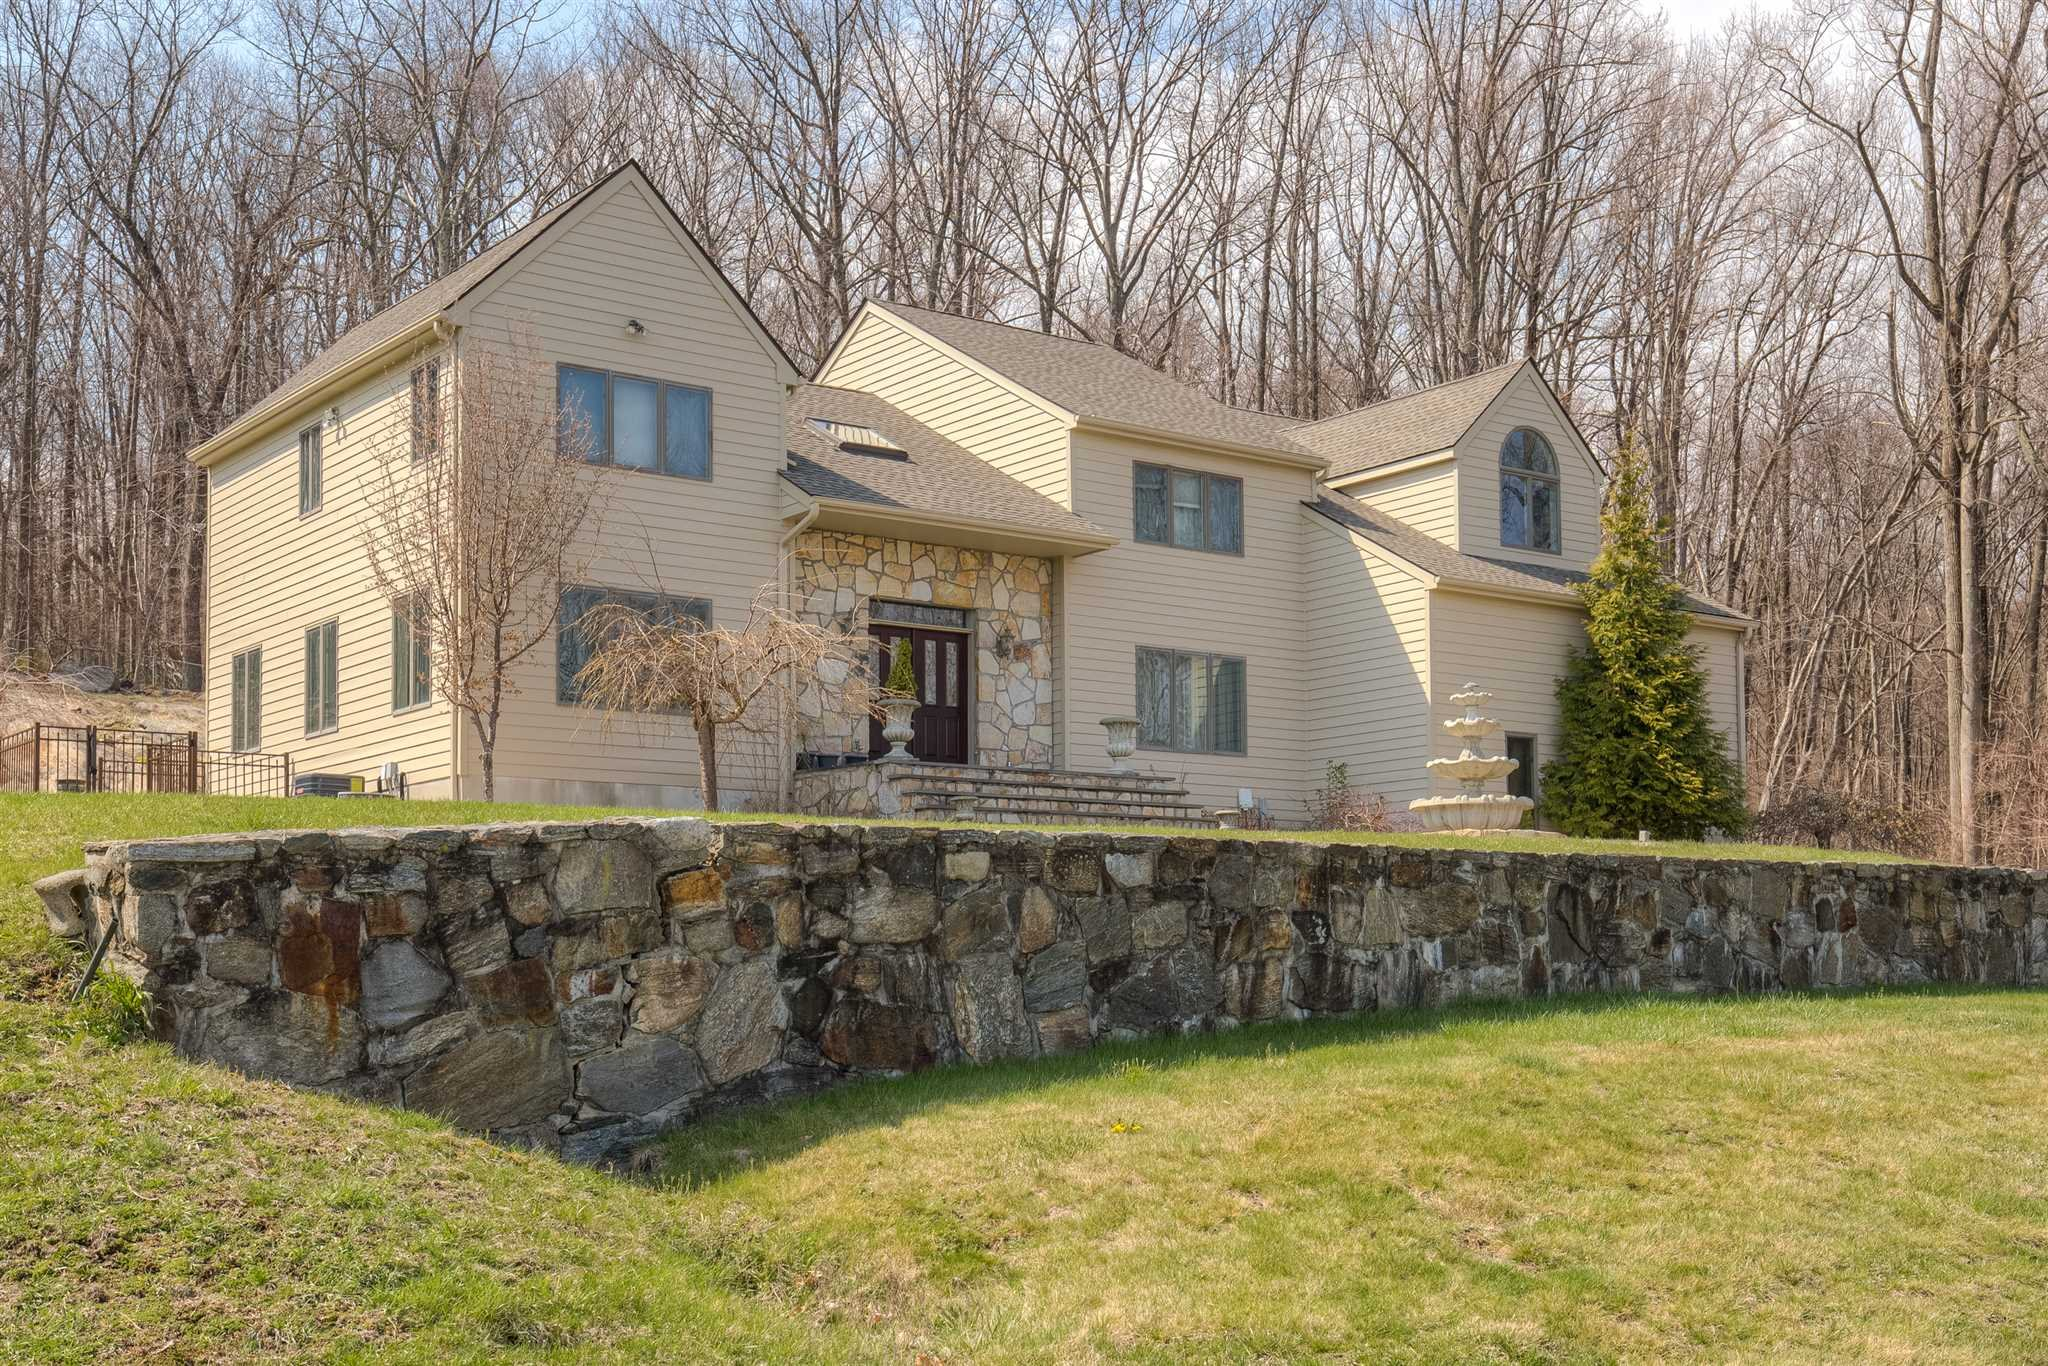 Single Family Home for Sale at 31 RESERVOIR 31 RESERVOIR Carmel, New York 10512 United States